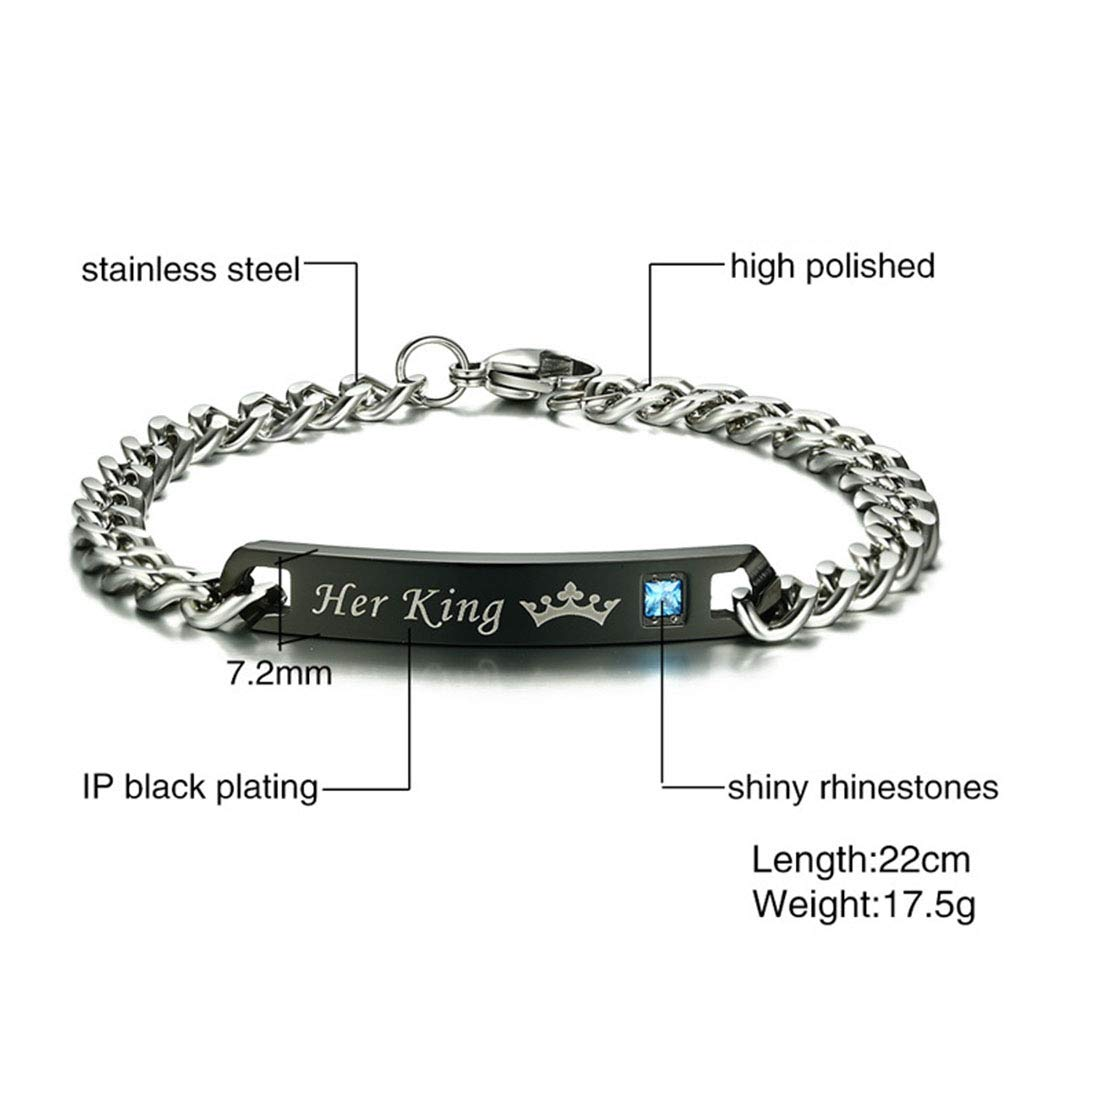 FOXI YOUTH 2 PCS Her King His Queen Lovers Stainless Steel Link Chain Identification Tag Couple Bracelet